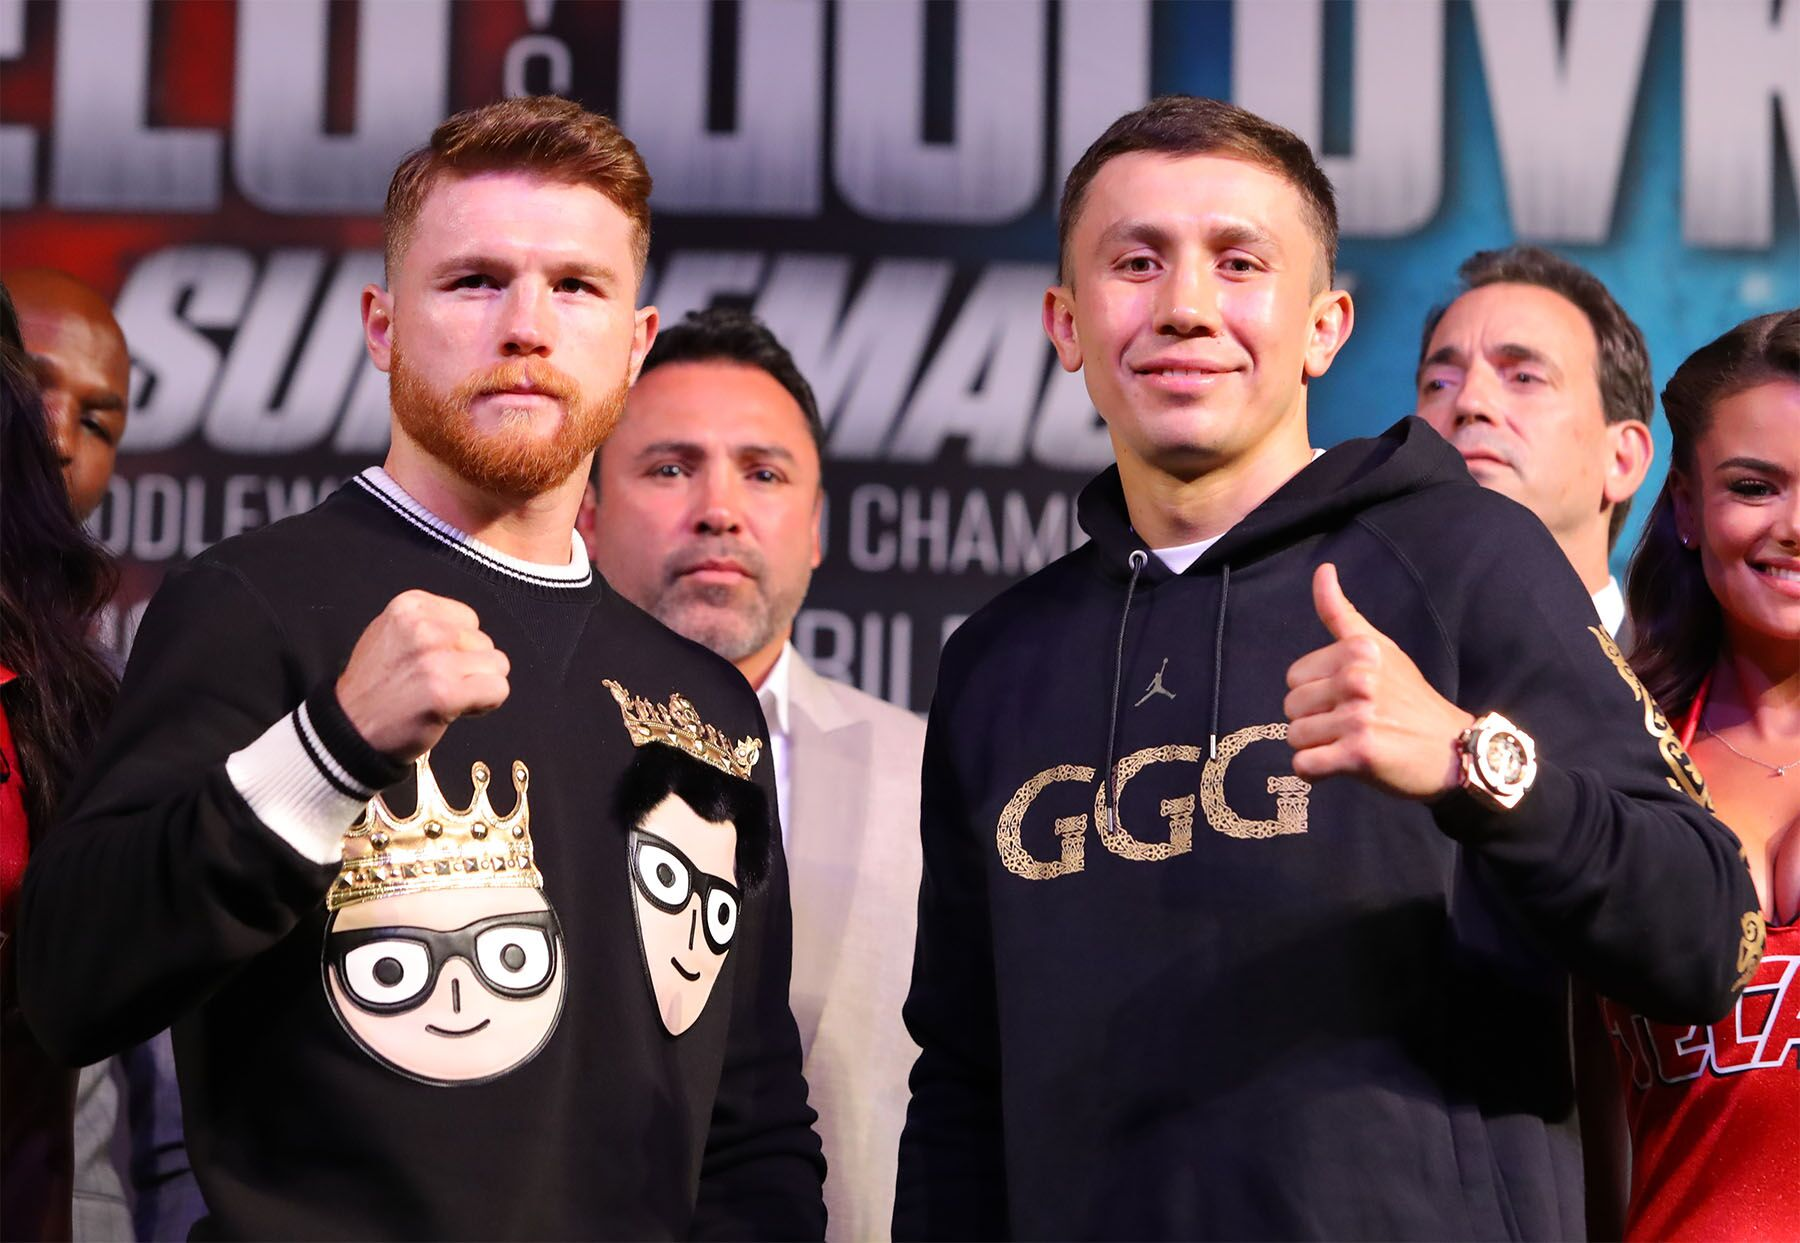 Golovkin and Alvarez victor  was not determined